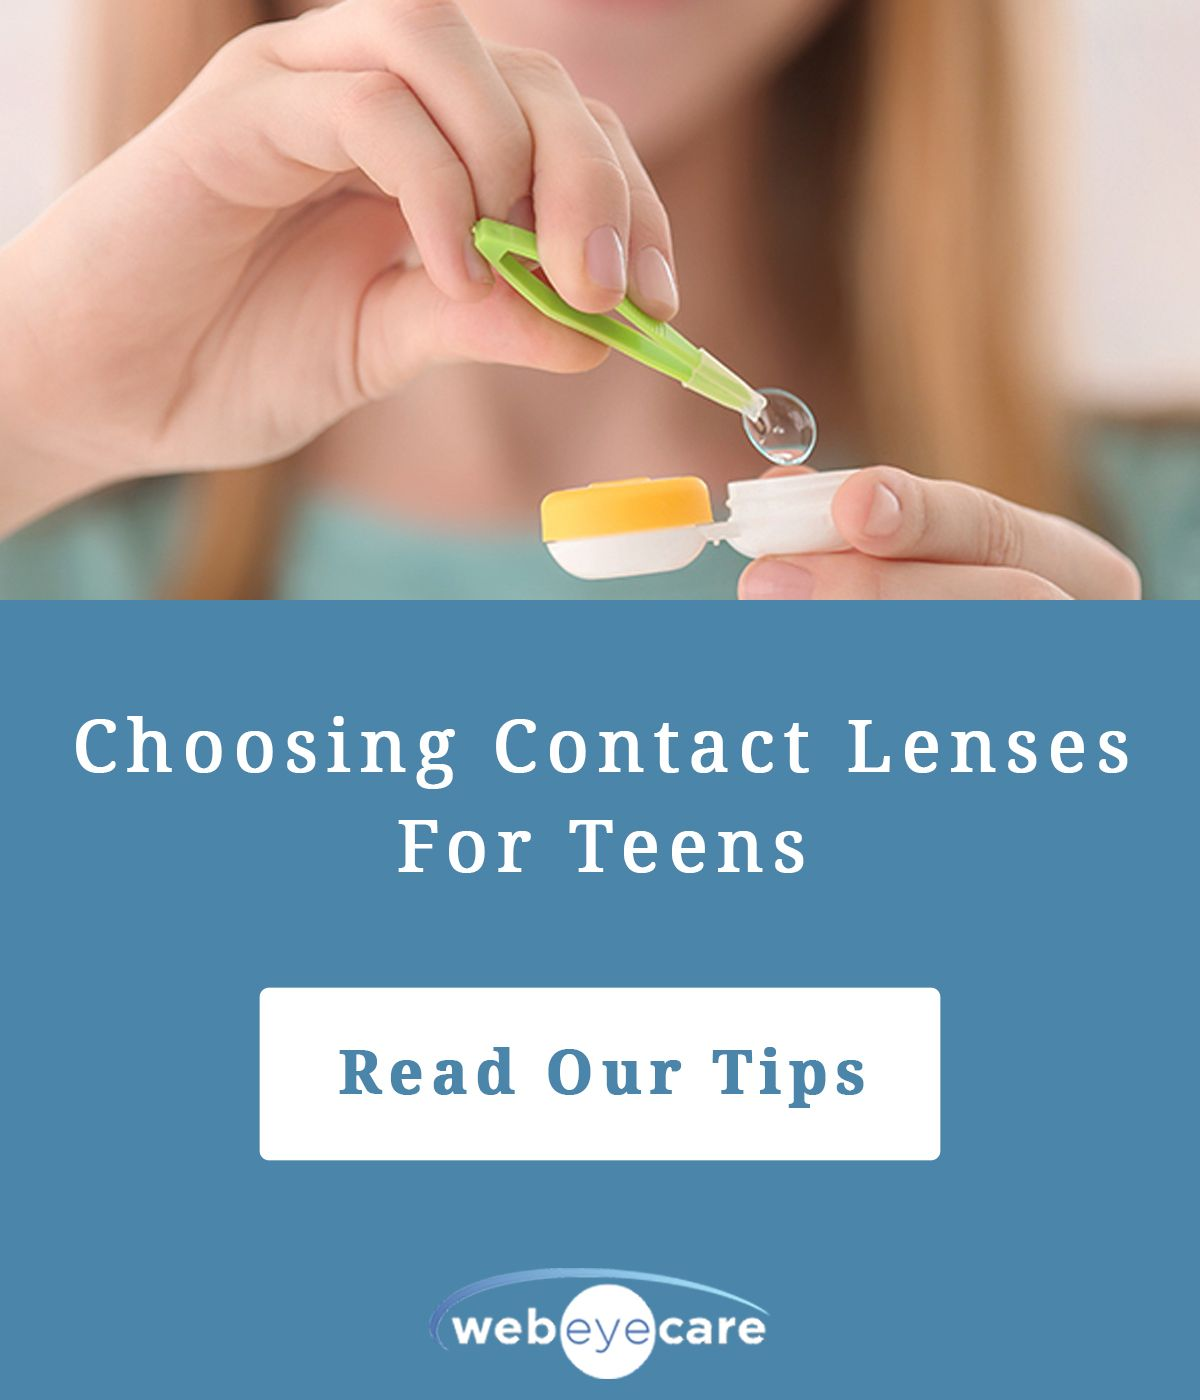 Pin on Contact Lens F.A.Q.